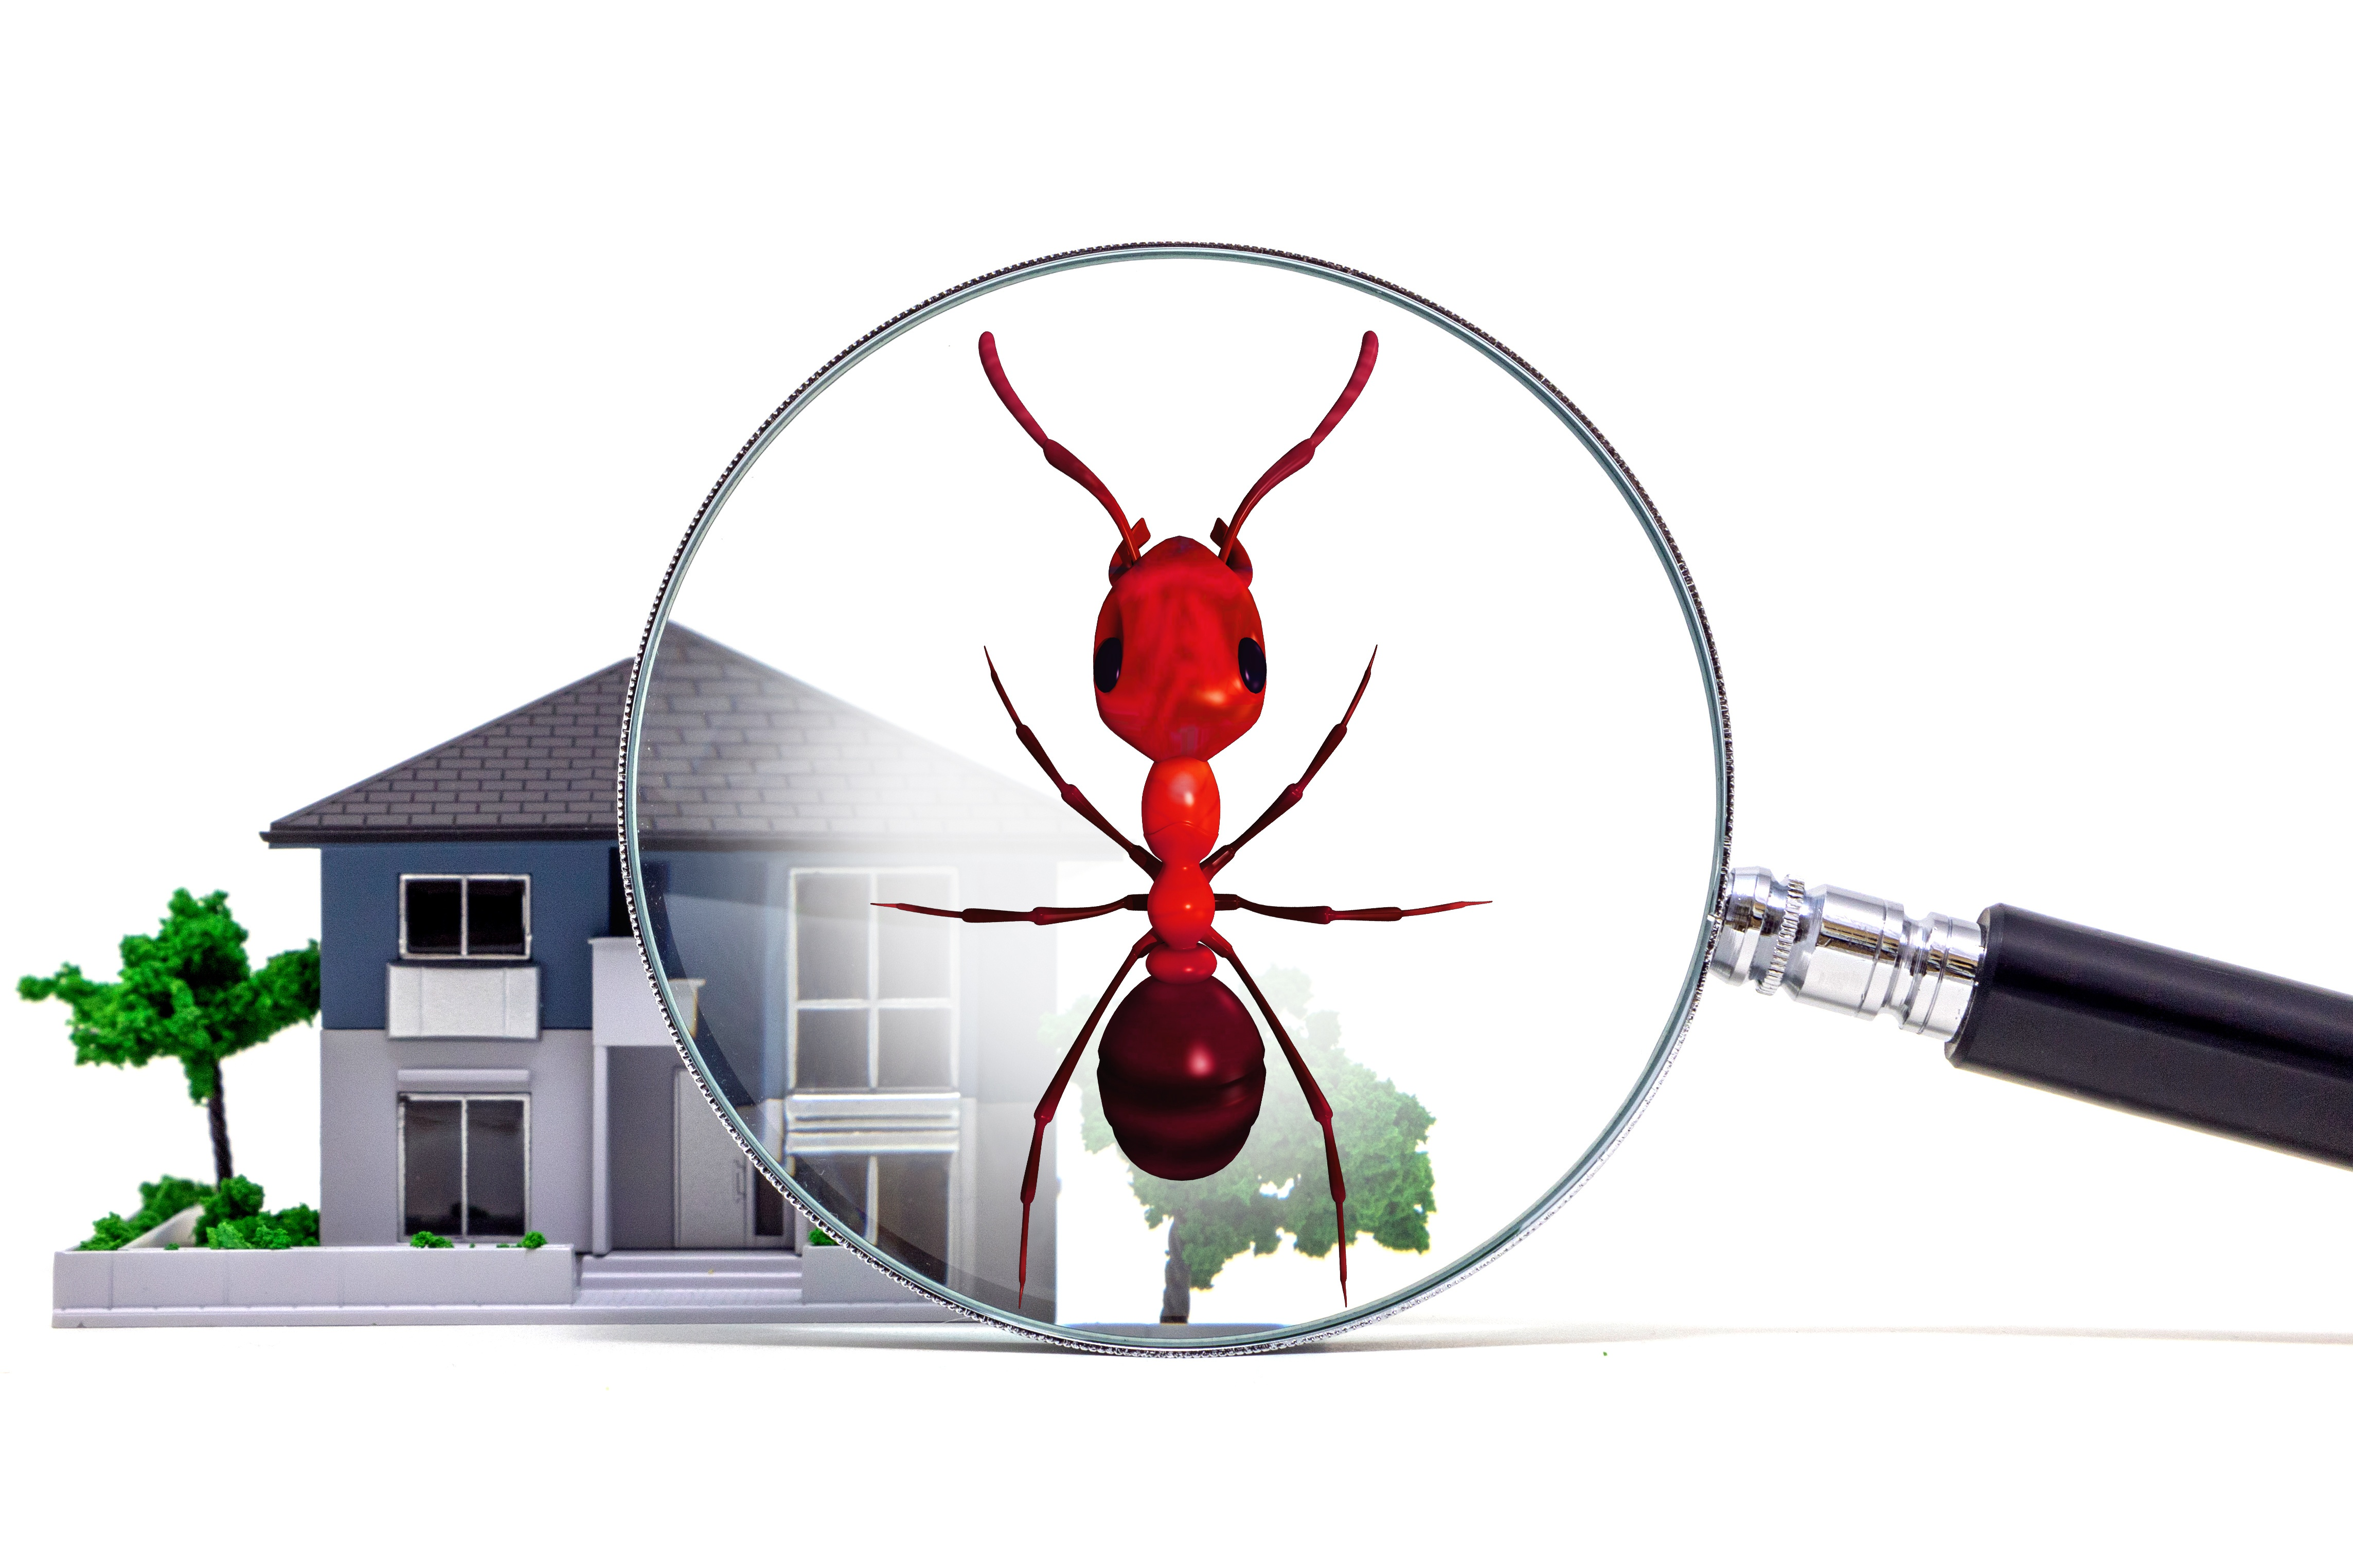 Top 4 Pests You Don't Want, troy mo pest and termite servicesaround the clock pest control, residential pest control, quarterly pest control,